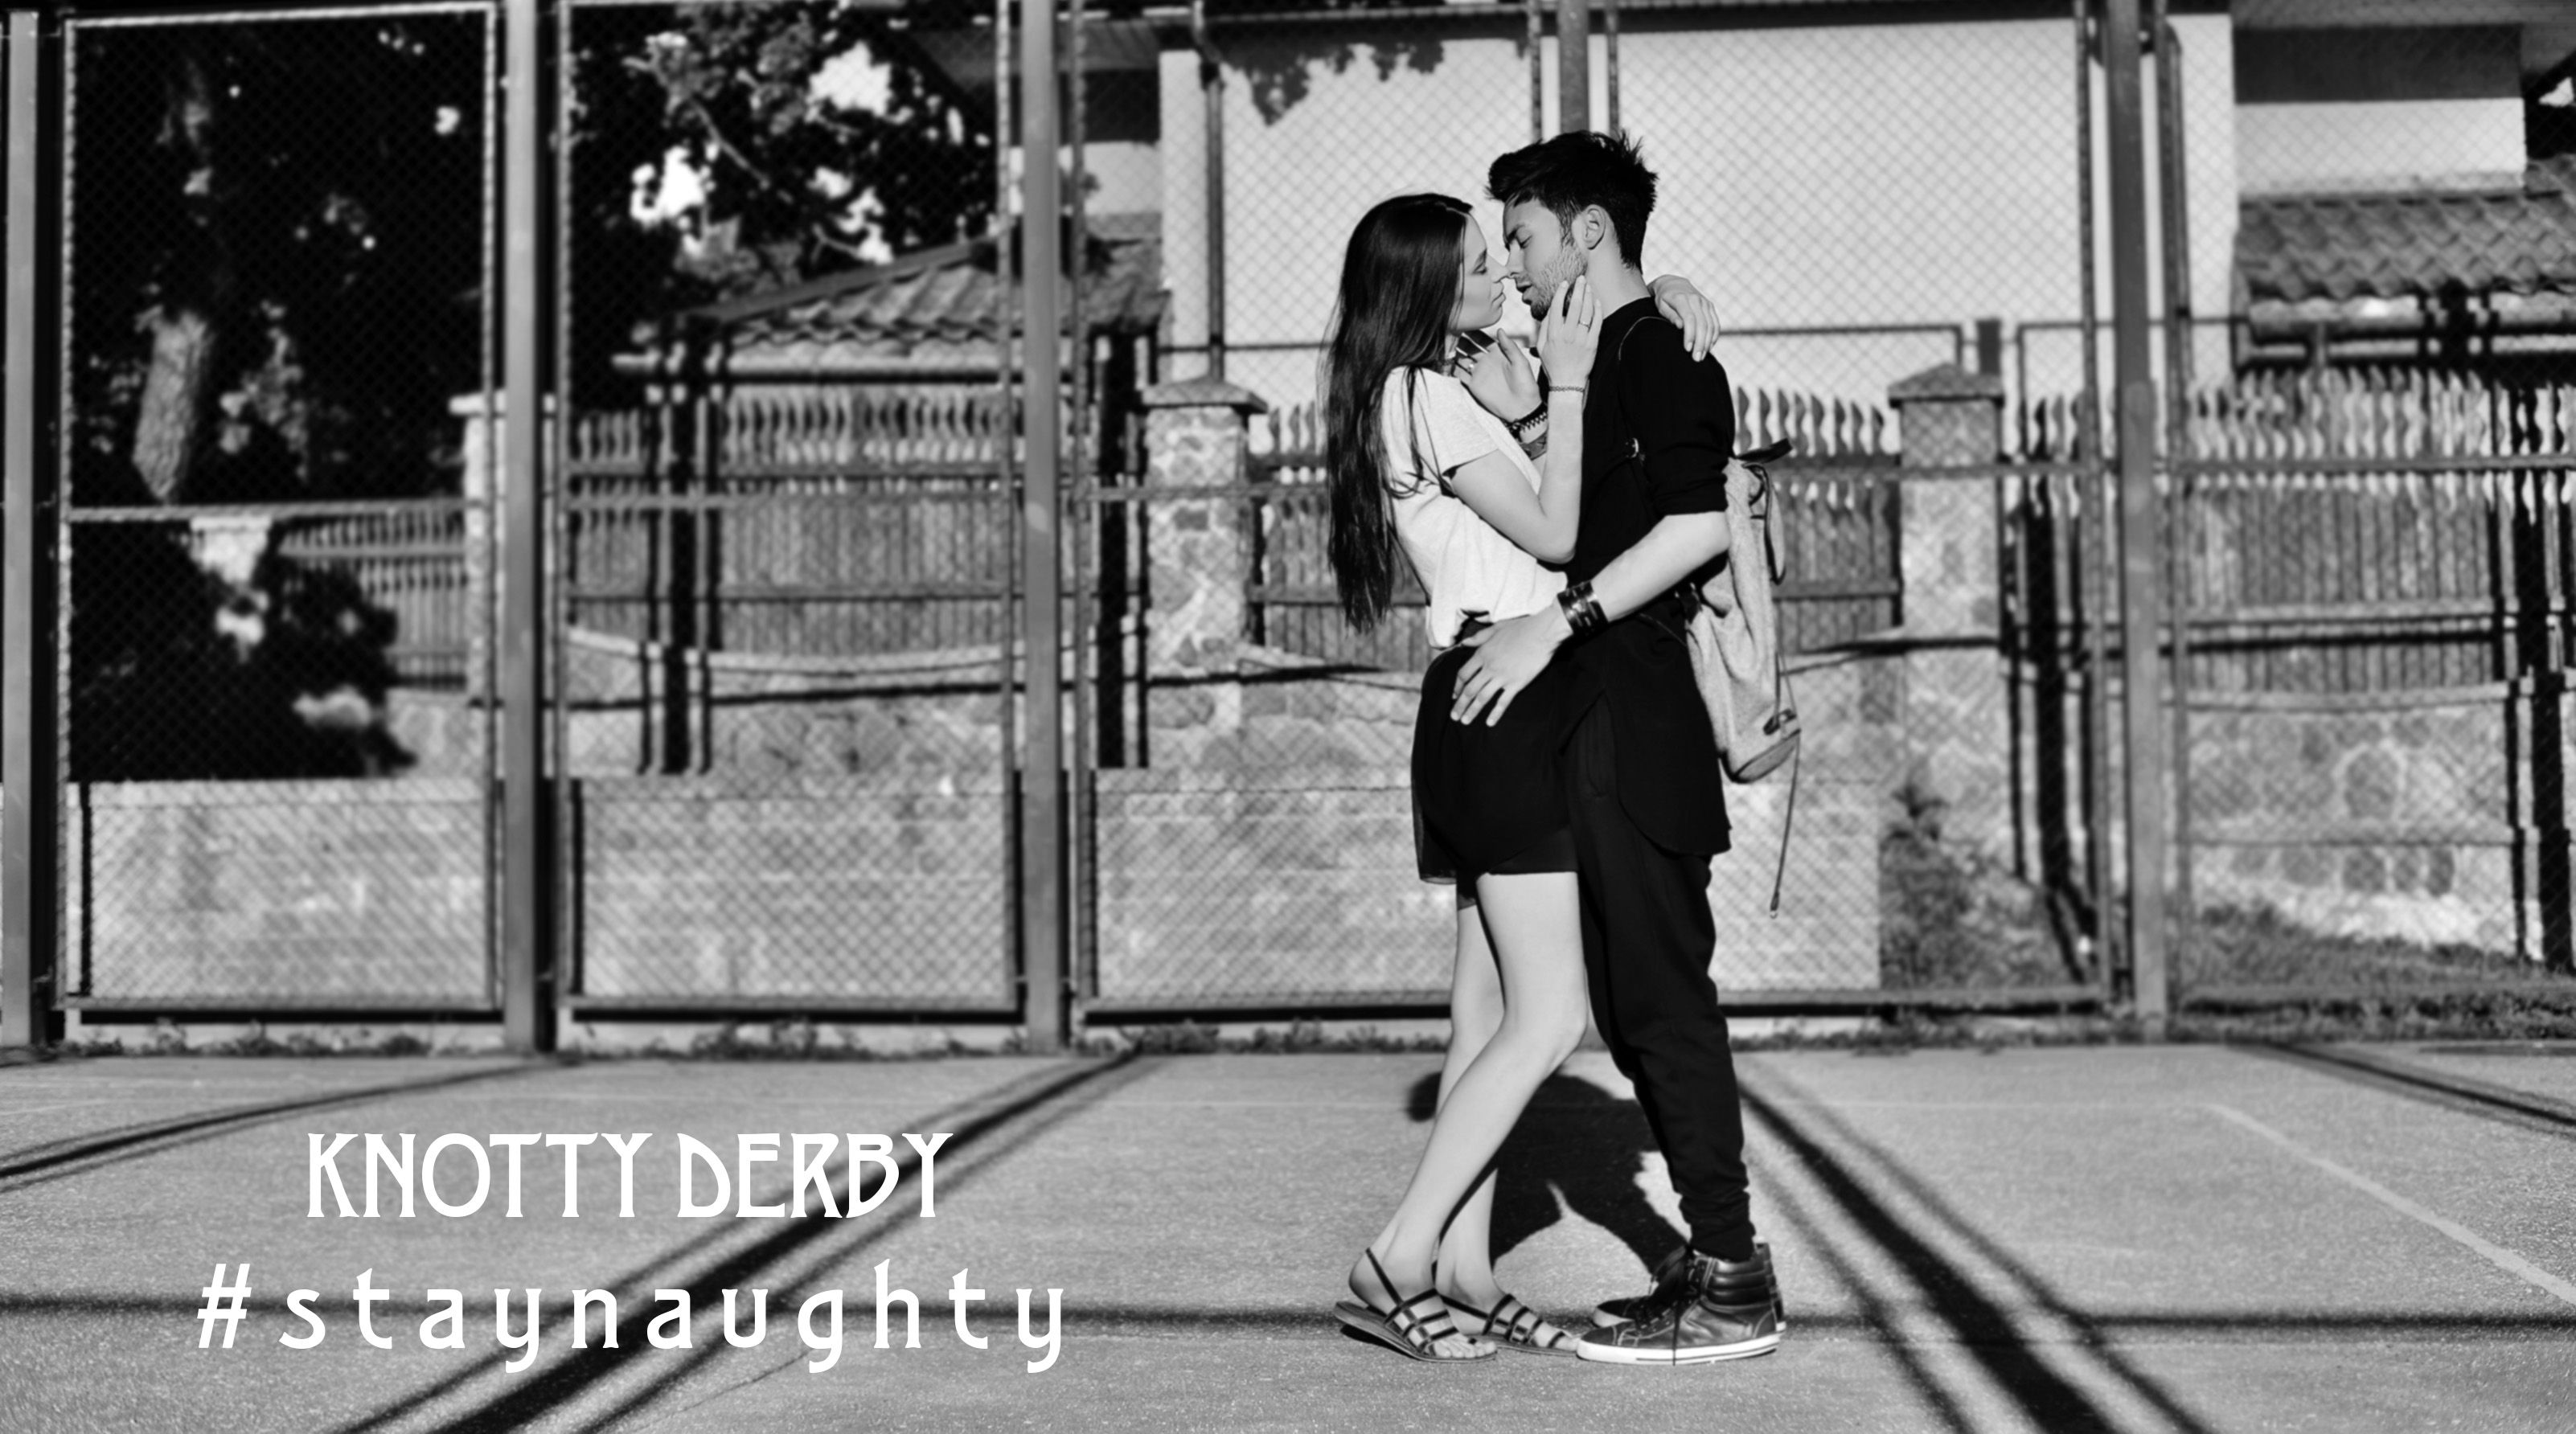 Knotty Derby | #staynaughty | Coolest footwear collection